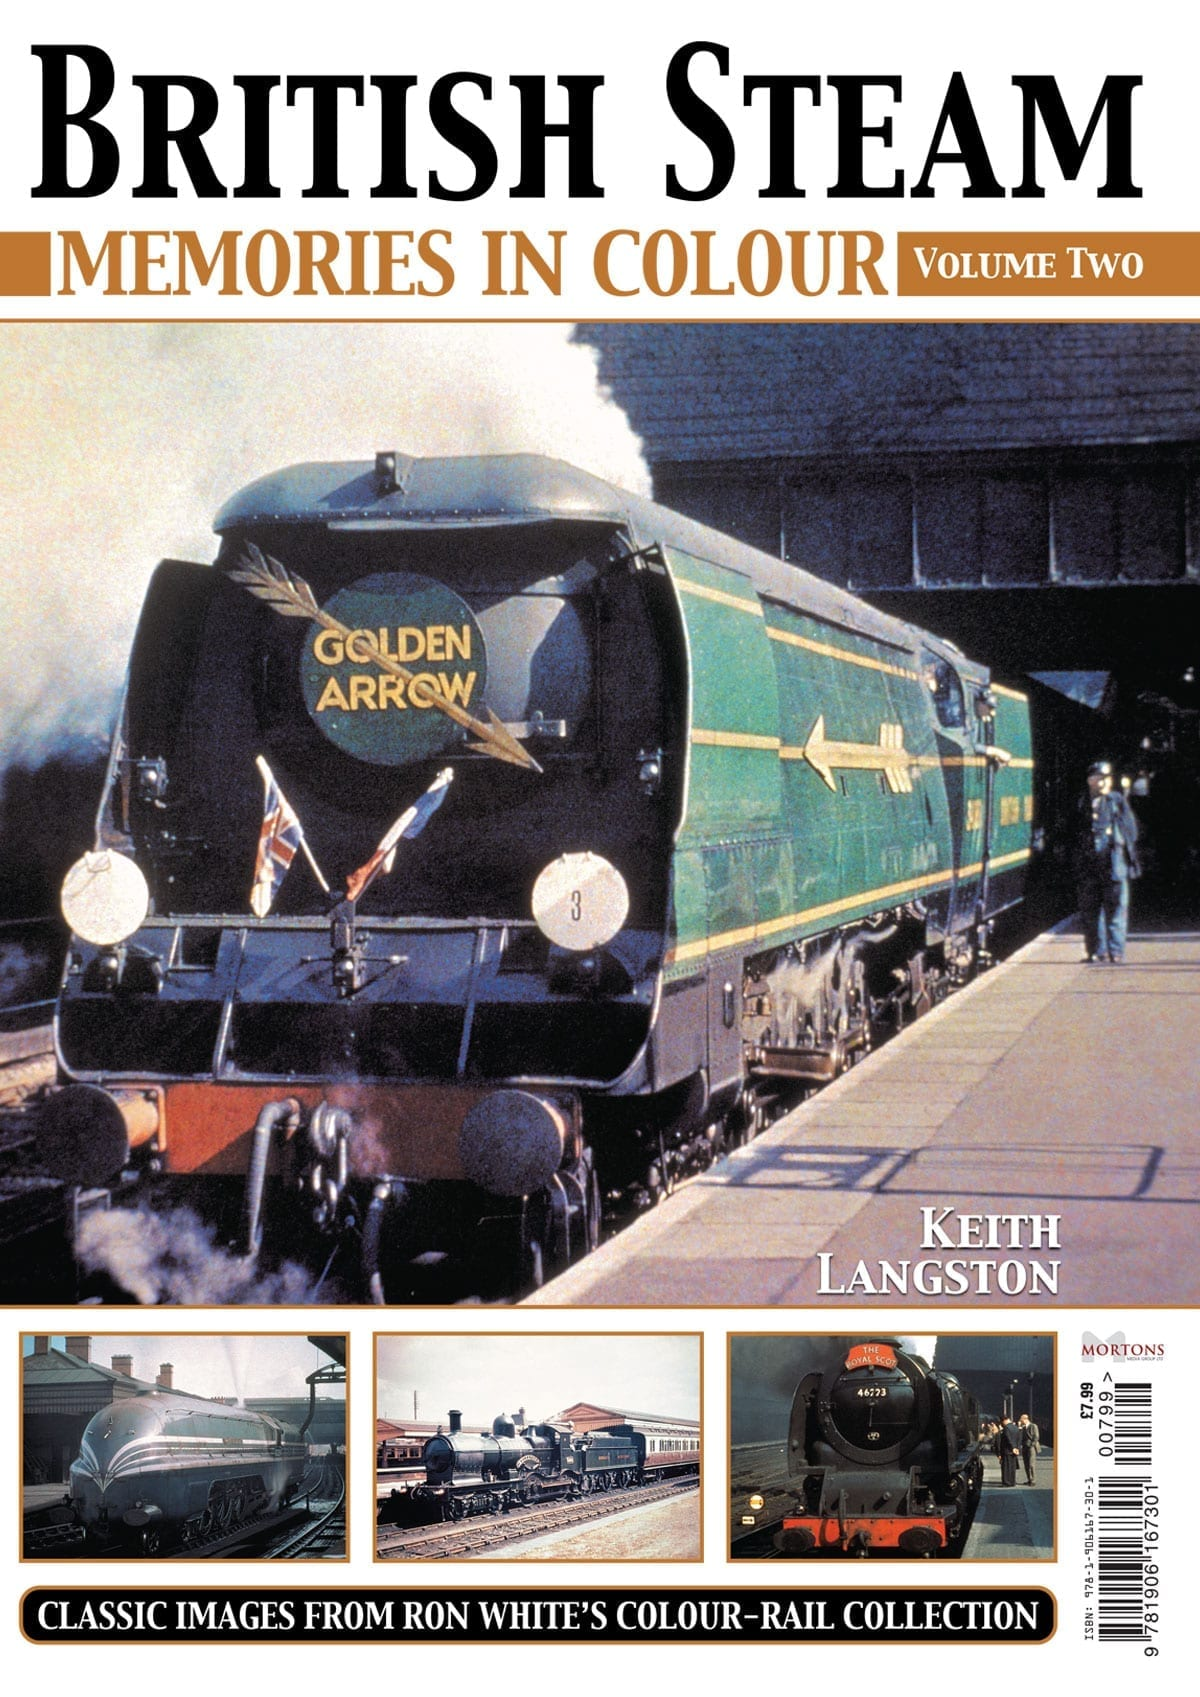 British Steam - Memories in Colour - Volume Two